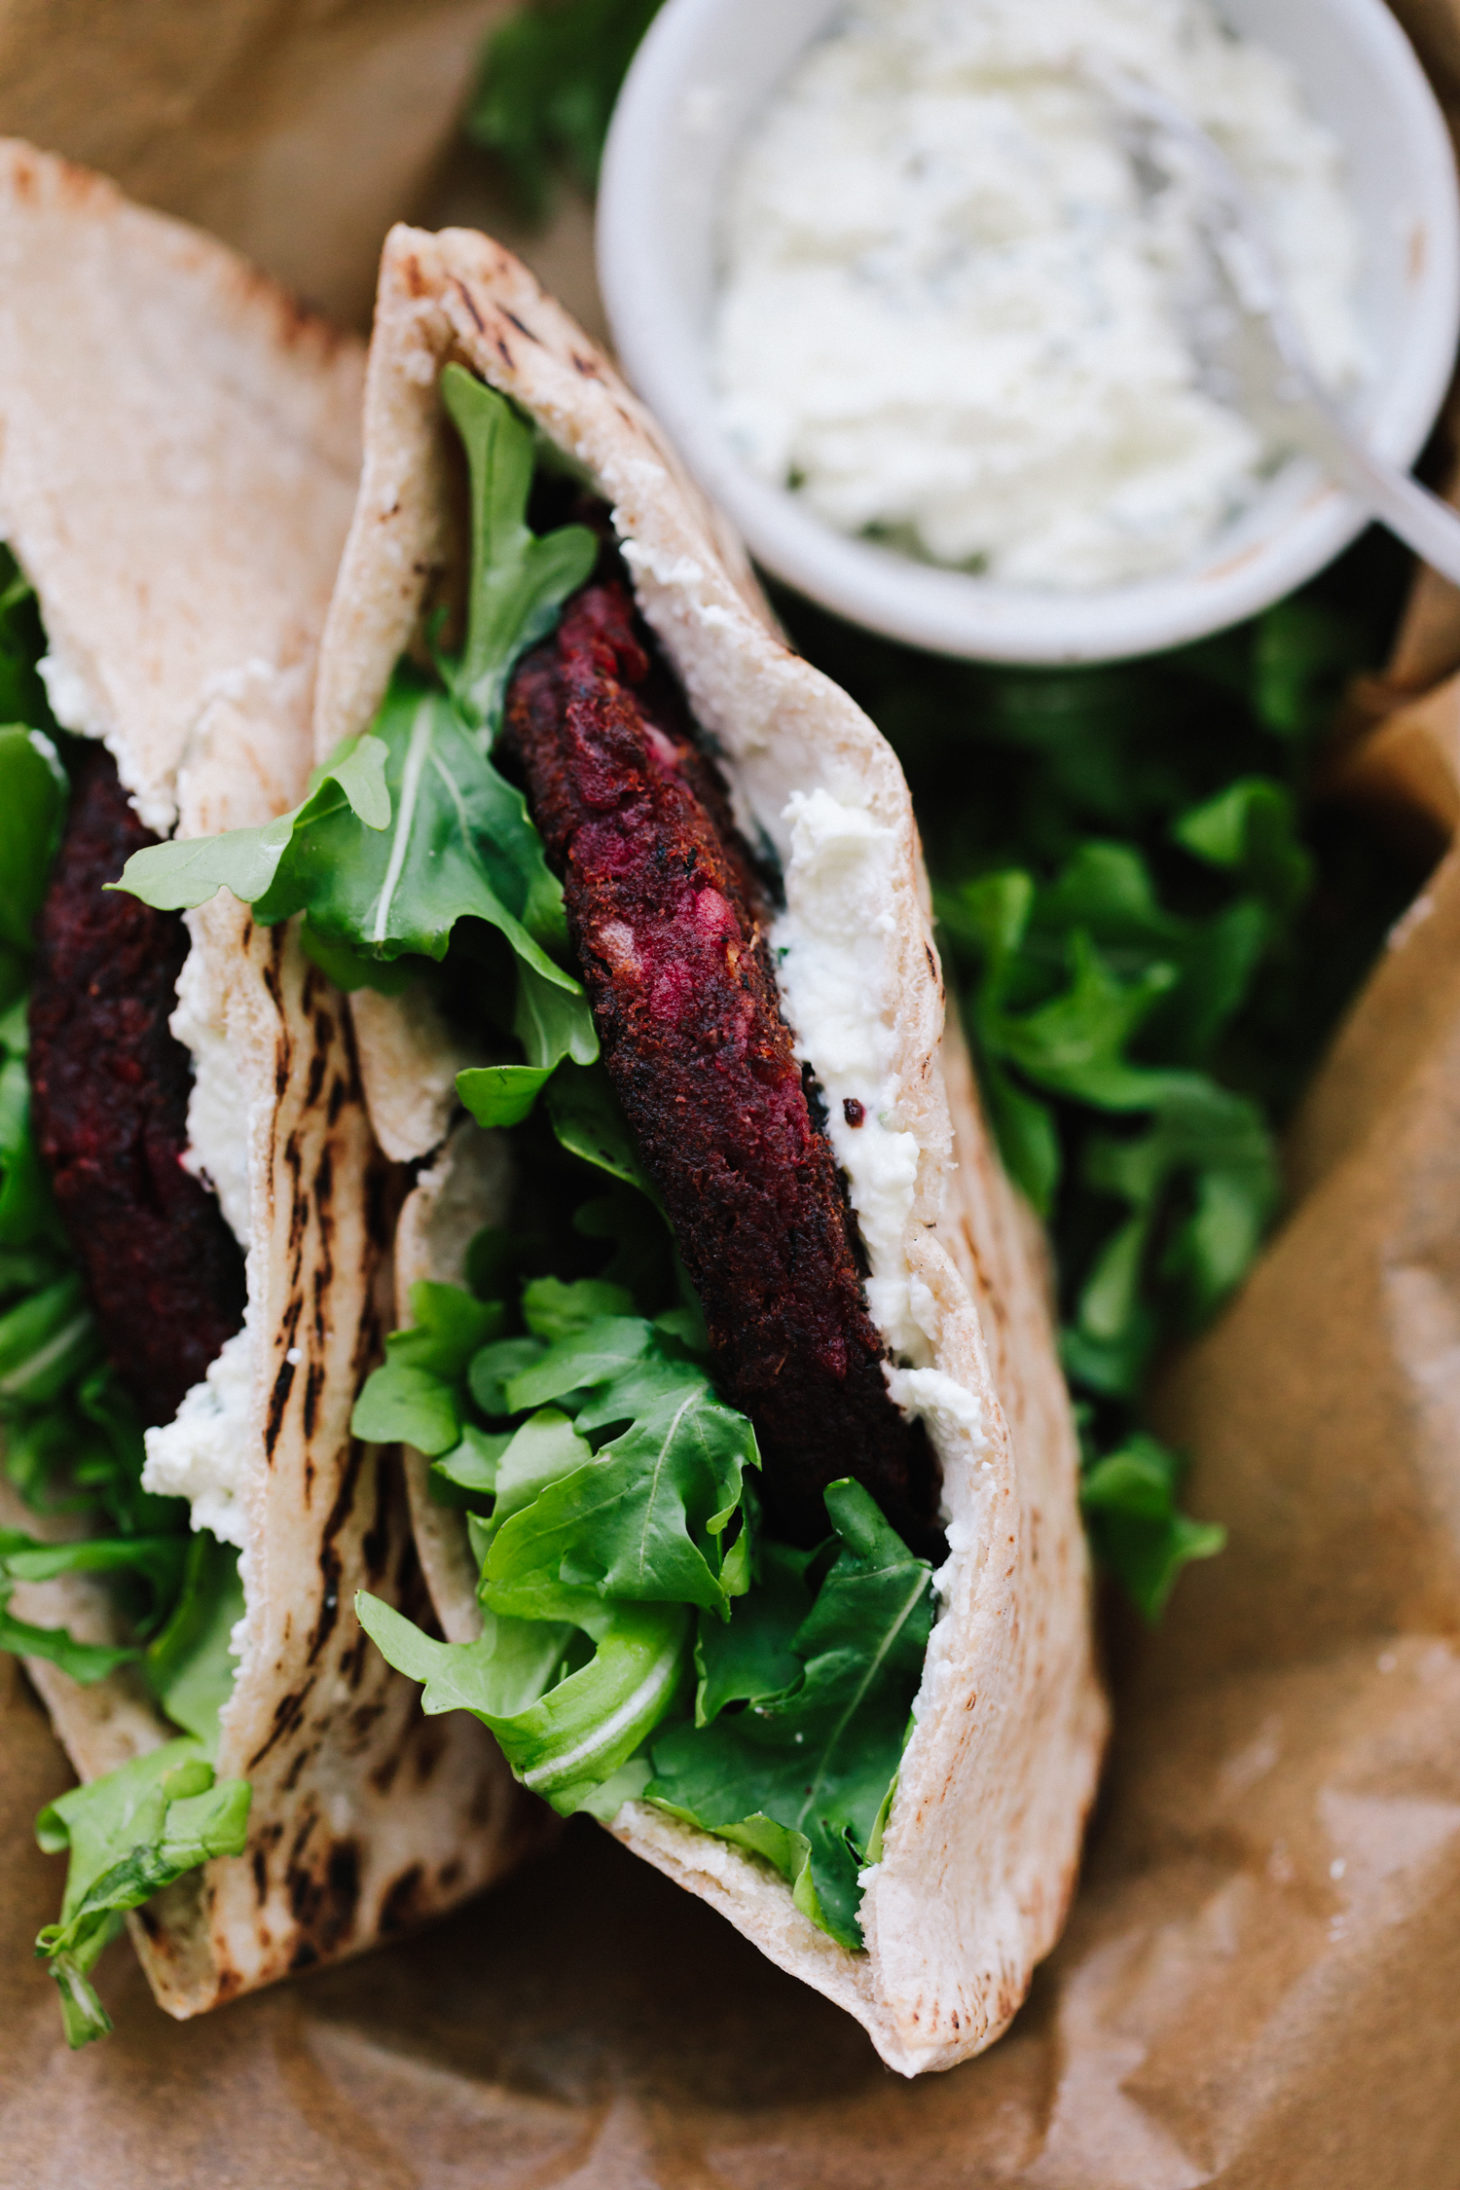 Close-up, overhead shot of pita stuffed with beet burgers, arugula, and whipped feta